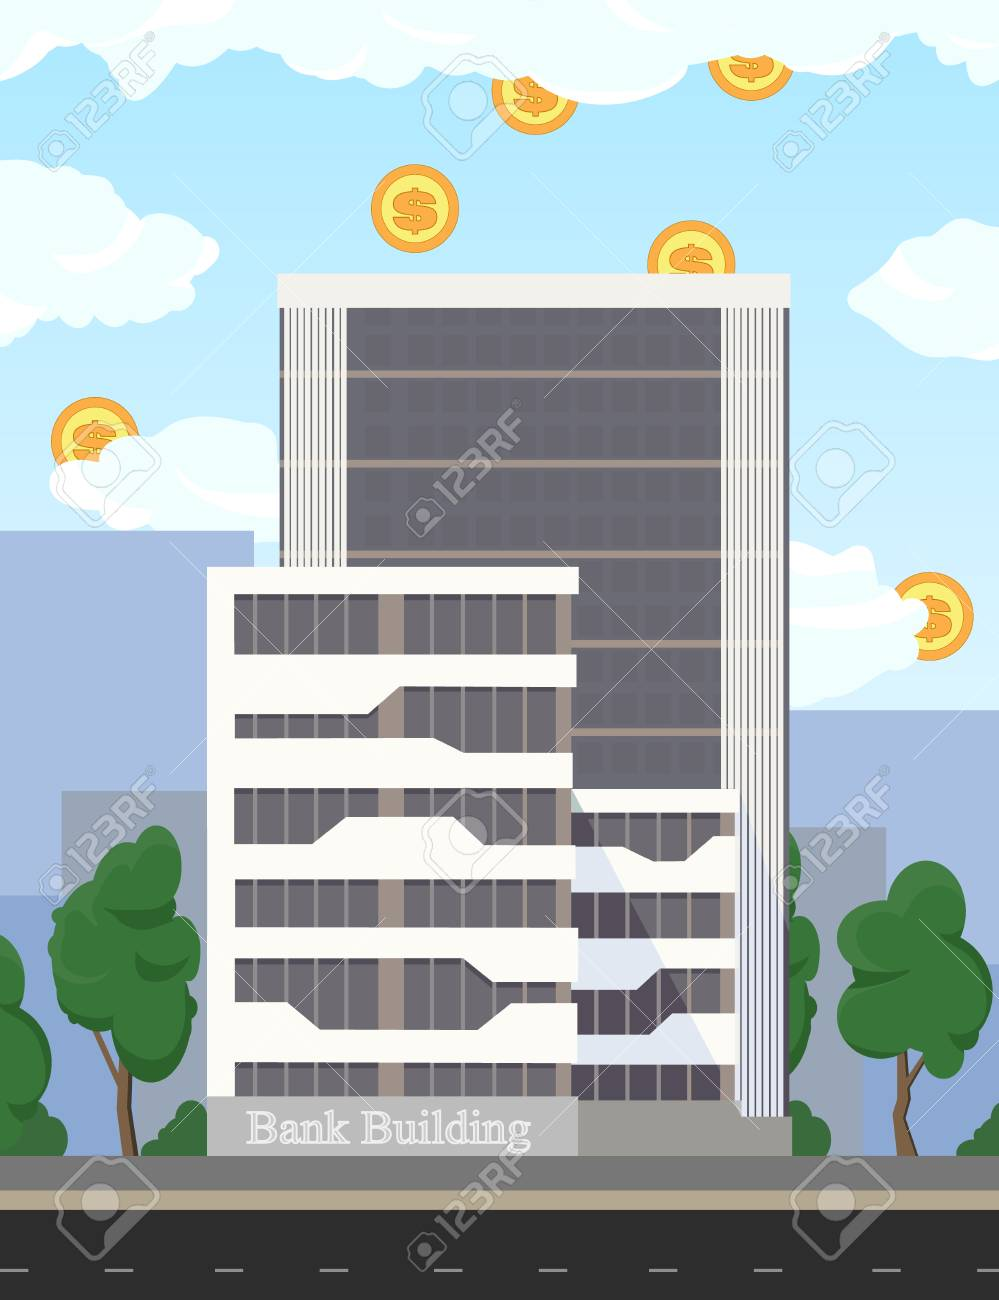 Real estate. Business building of bank and office bureaus. Business concept illustration - investment, profit flat design. Coins, dollar currency falls into the bank building from clouds. - 104765118